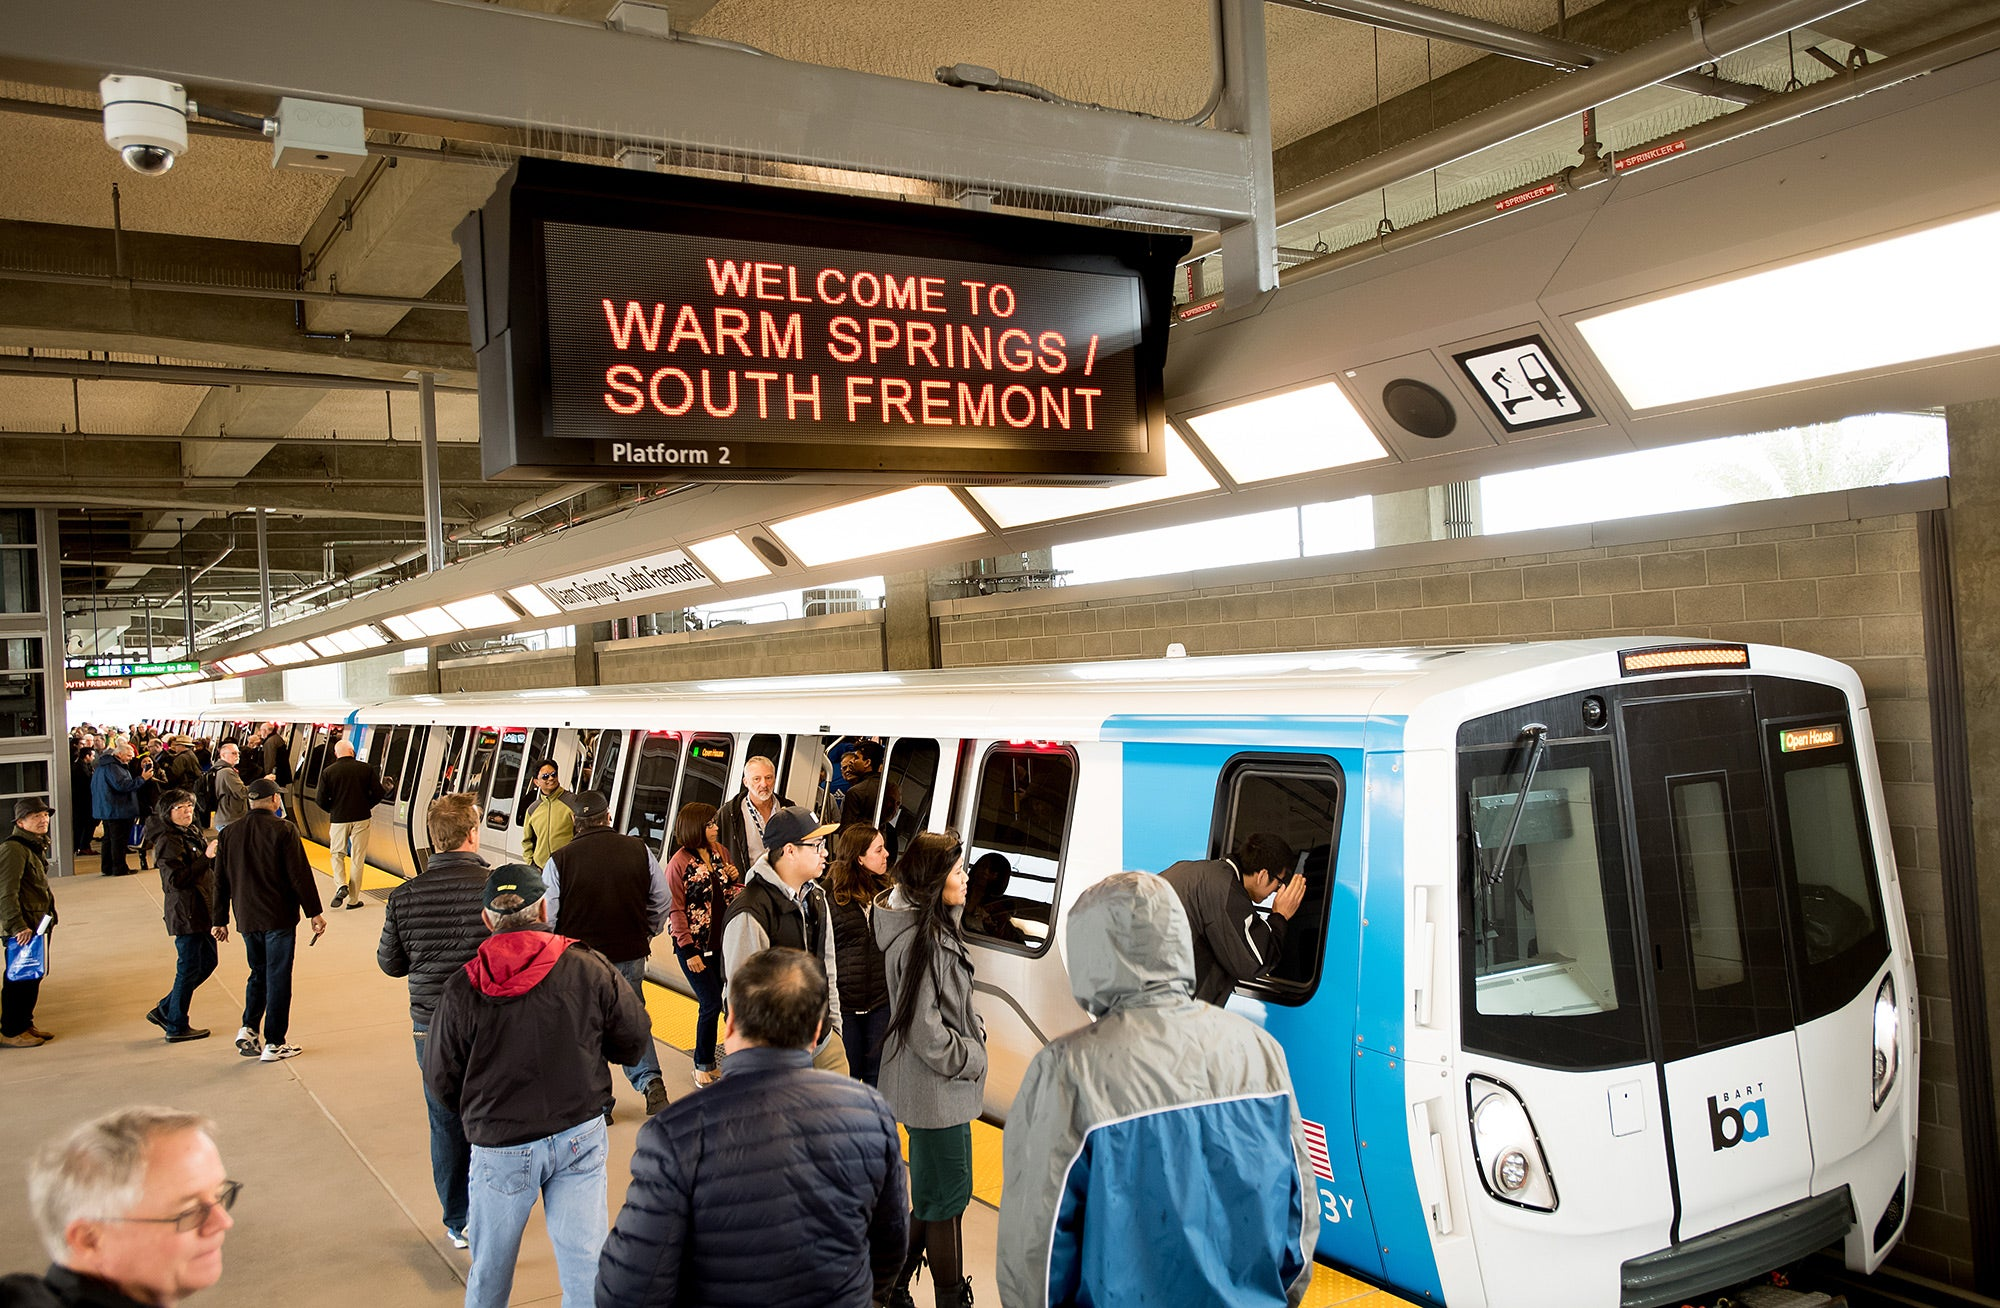 """Riders on the platform, with """"Welcome to the Warm Springs/South Fremont"""" message in the timetable sign above the BART train."""